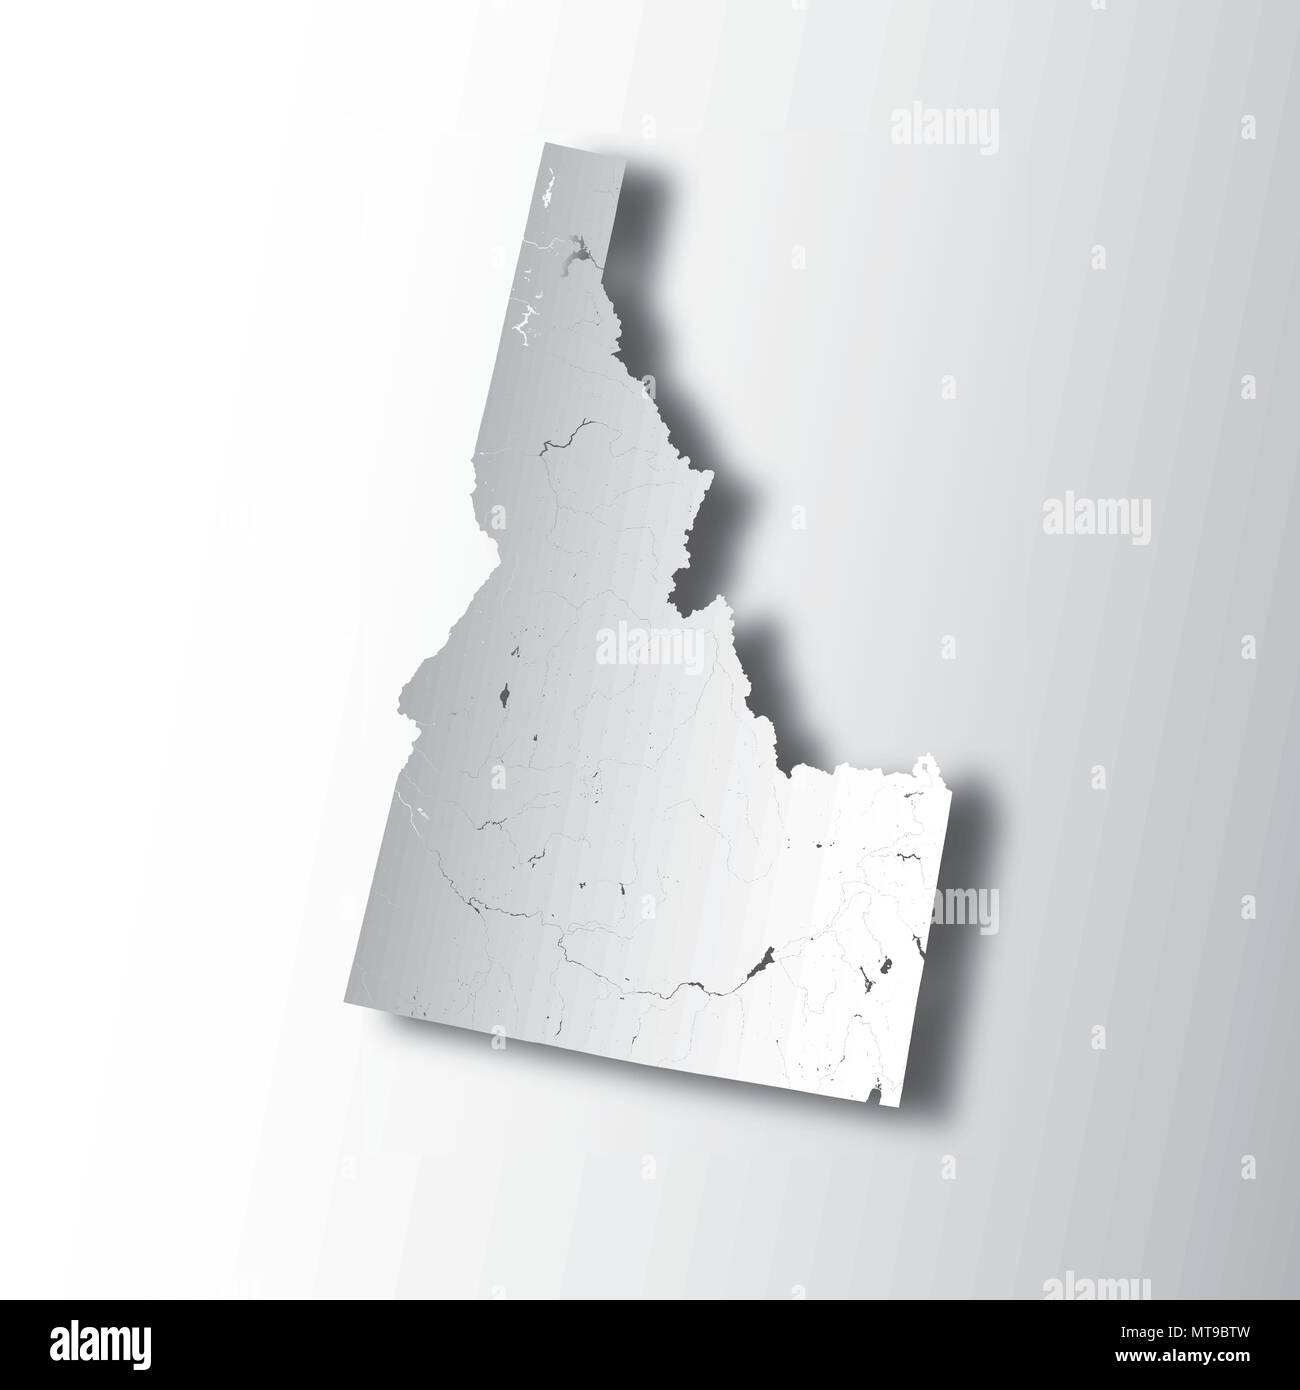 U.S. states - map of Idaho with paper cut effect. Hand made. Rivers and lakes are shown. Please look at my other images of cartographic series - they  - Stock Vector